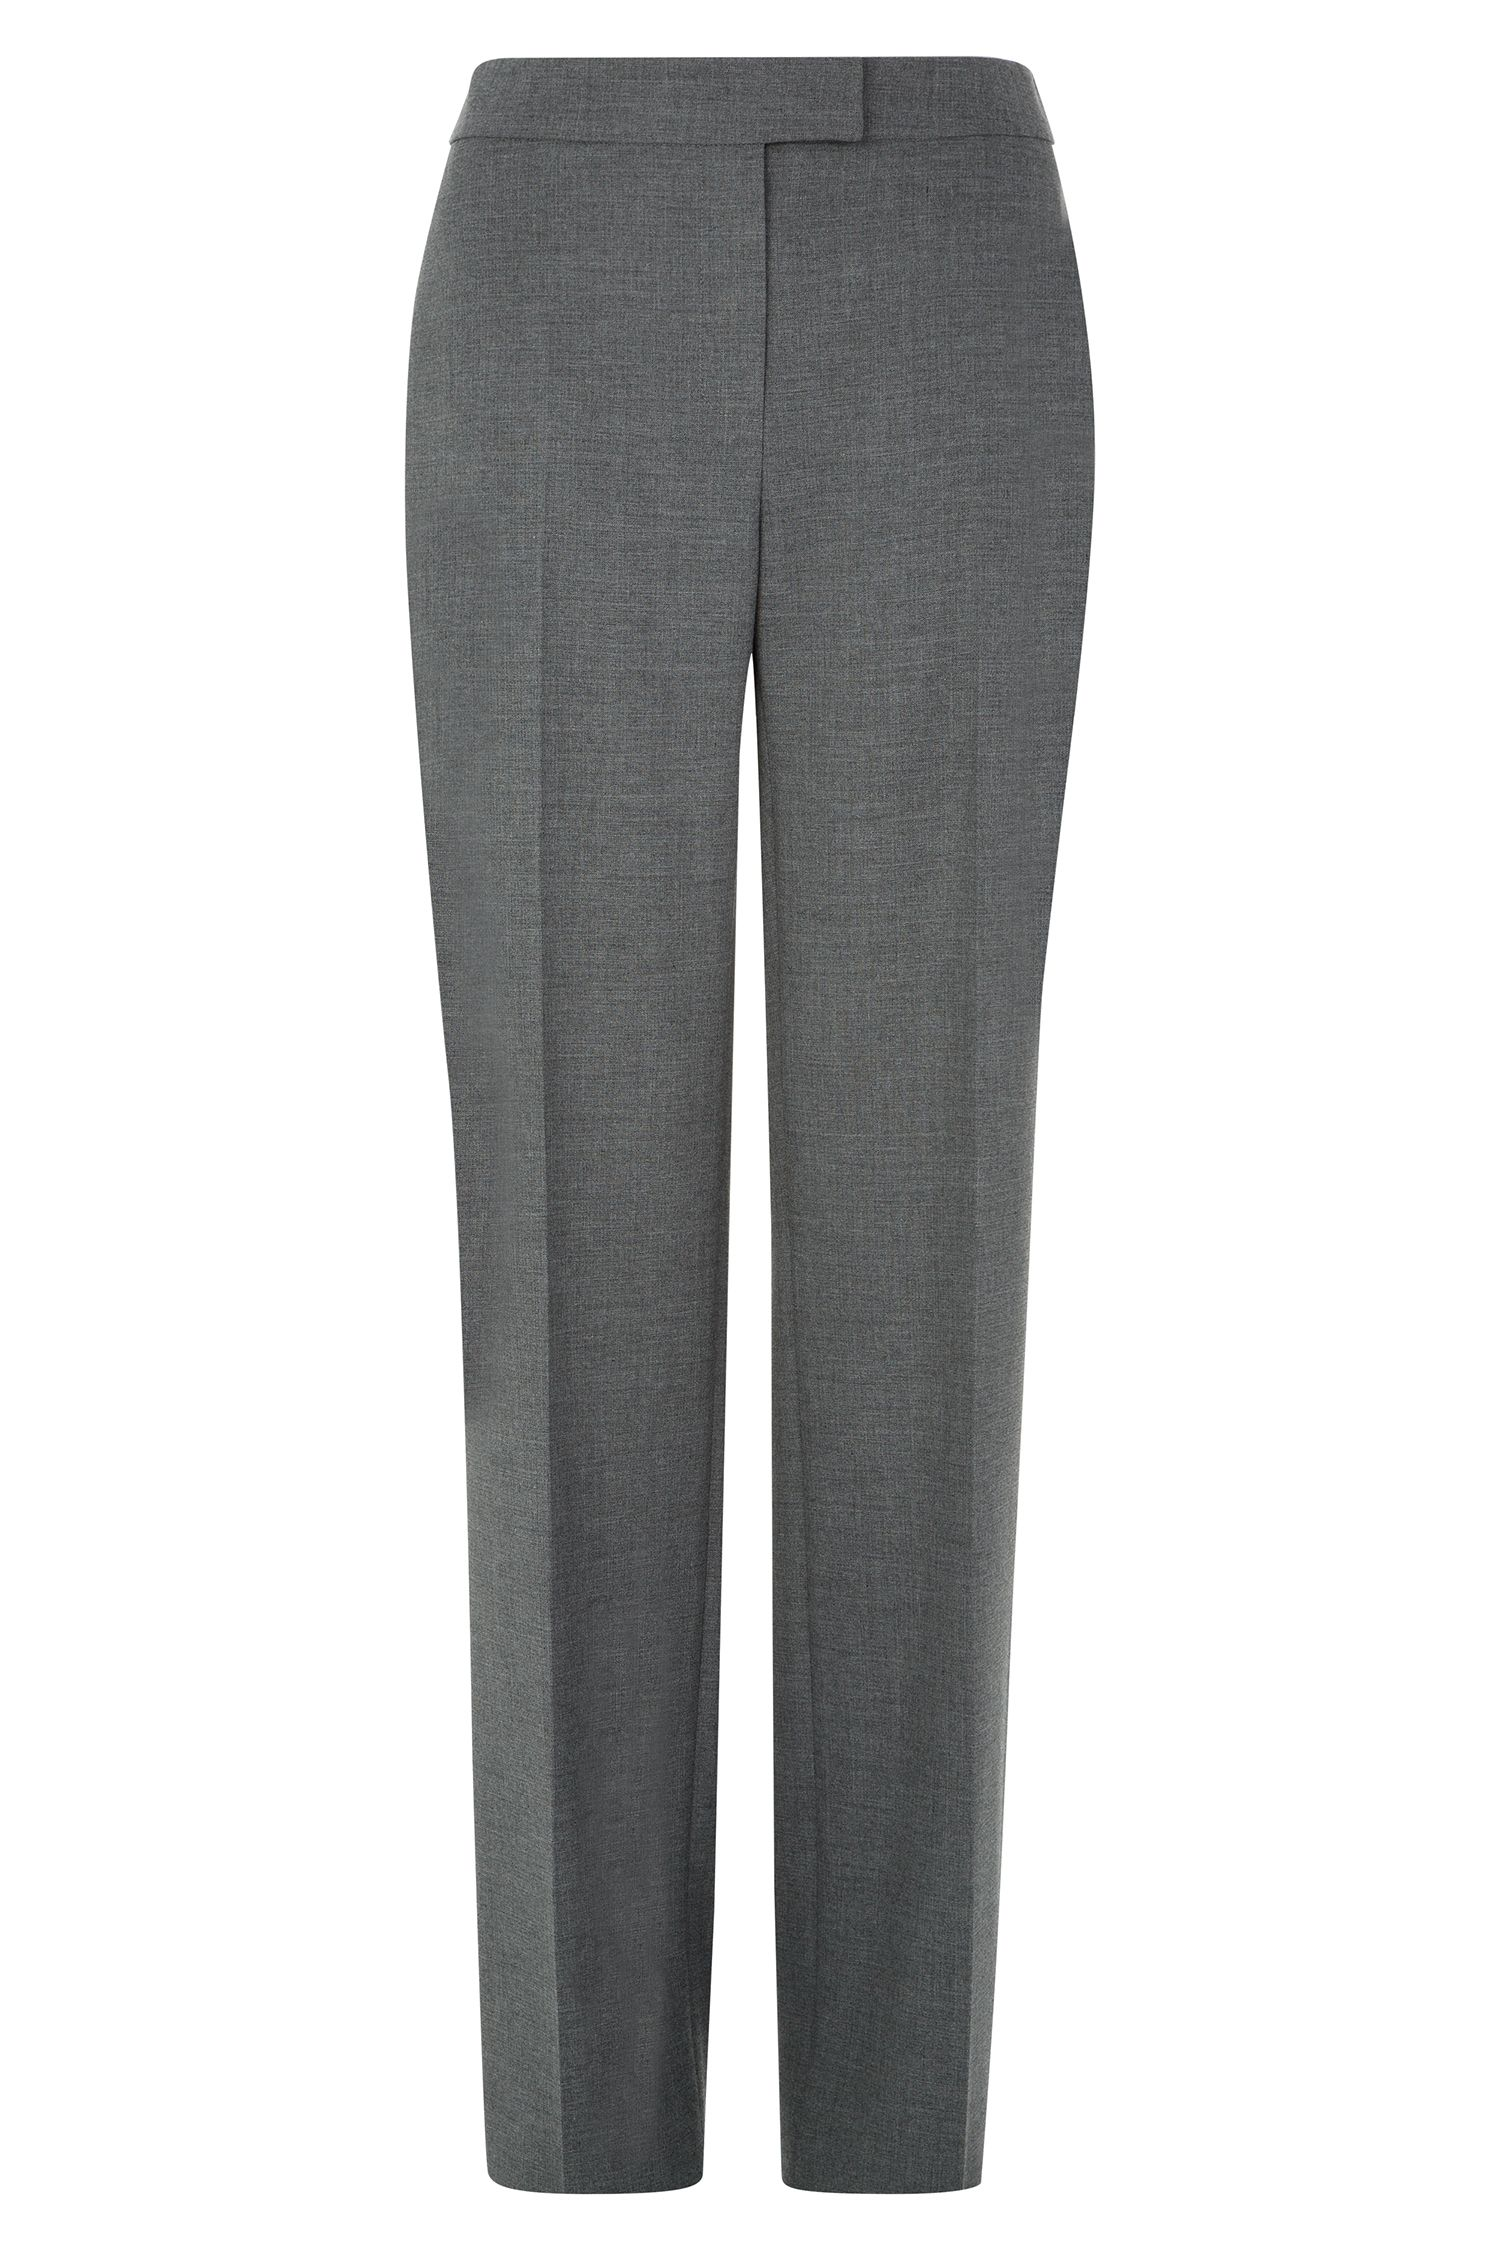 Damsel in a Dress Daxton Trouser, Grey